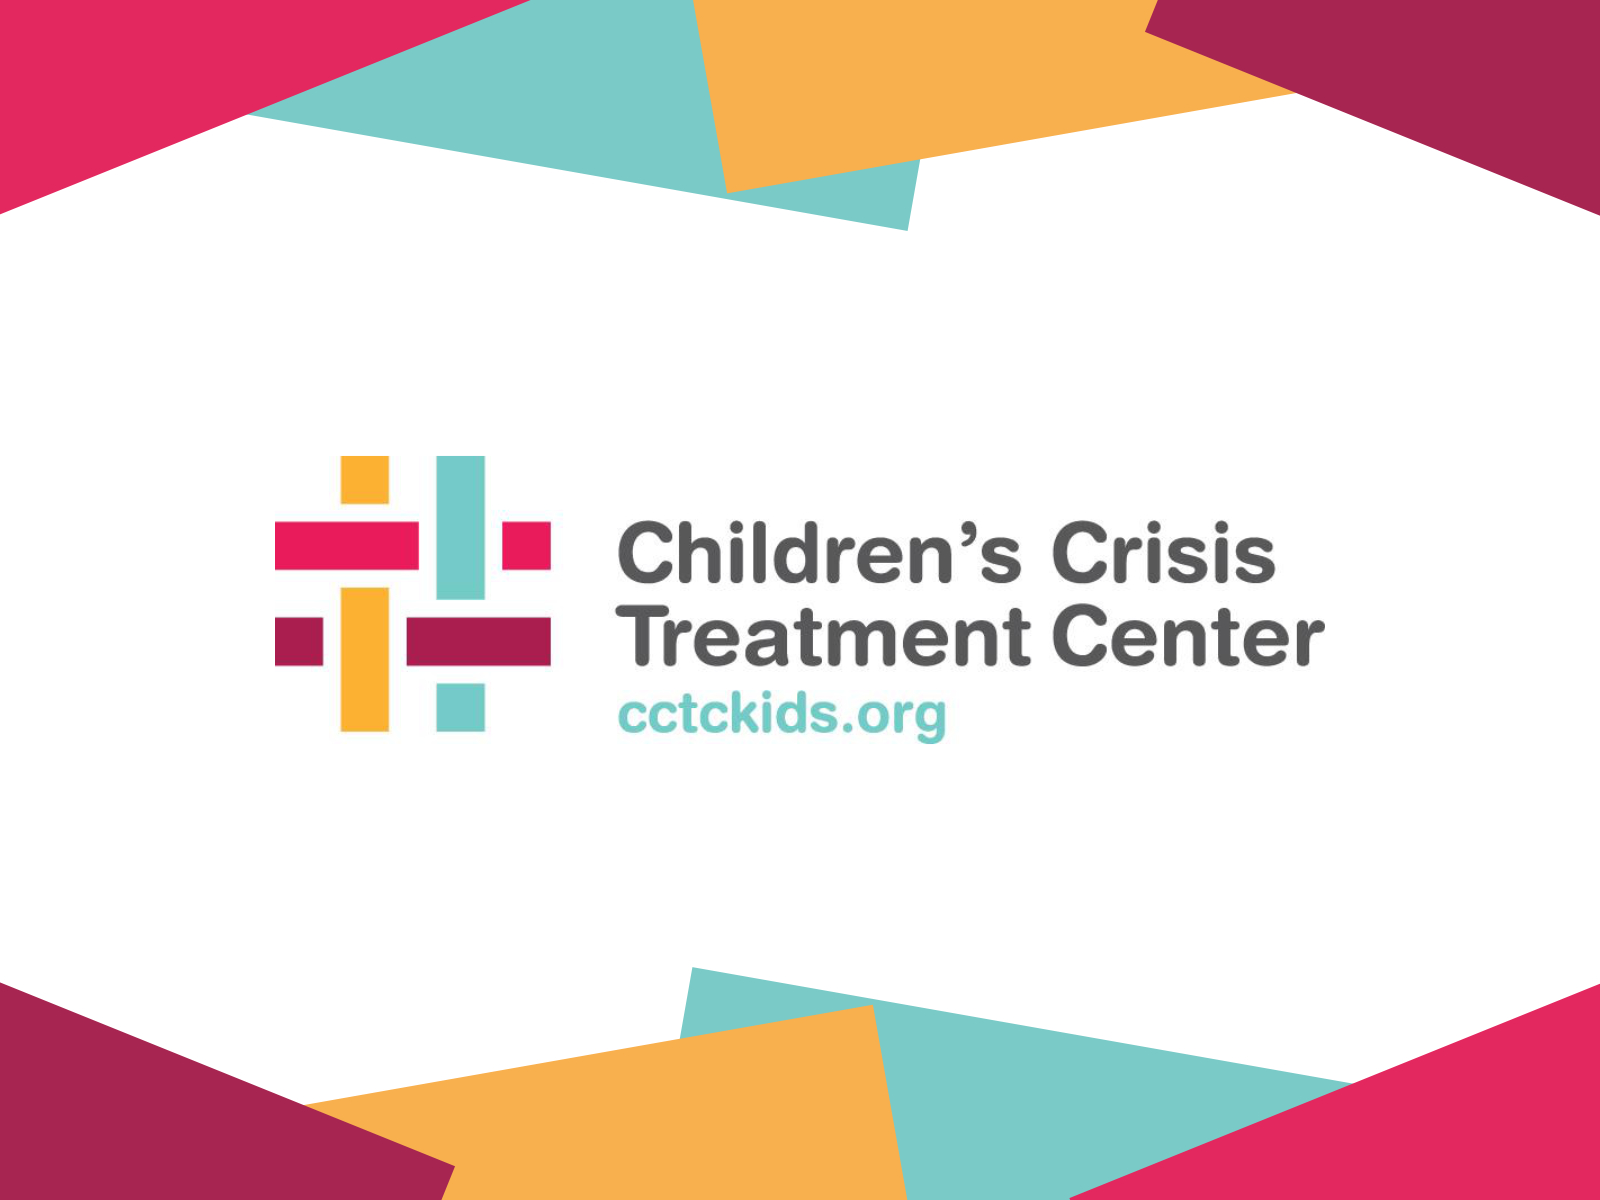 Children's Crisis Treatment Center